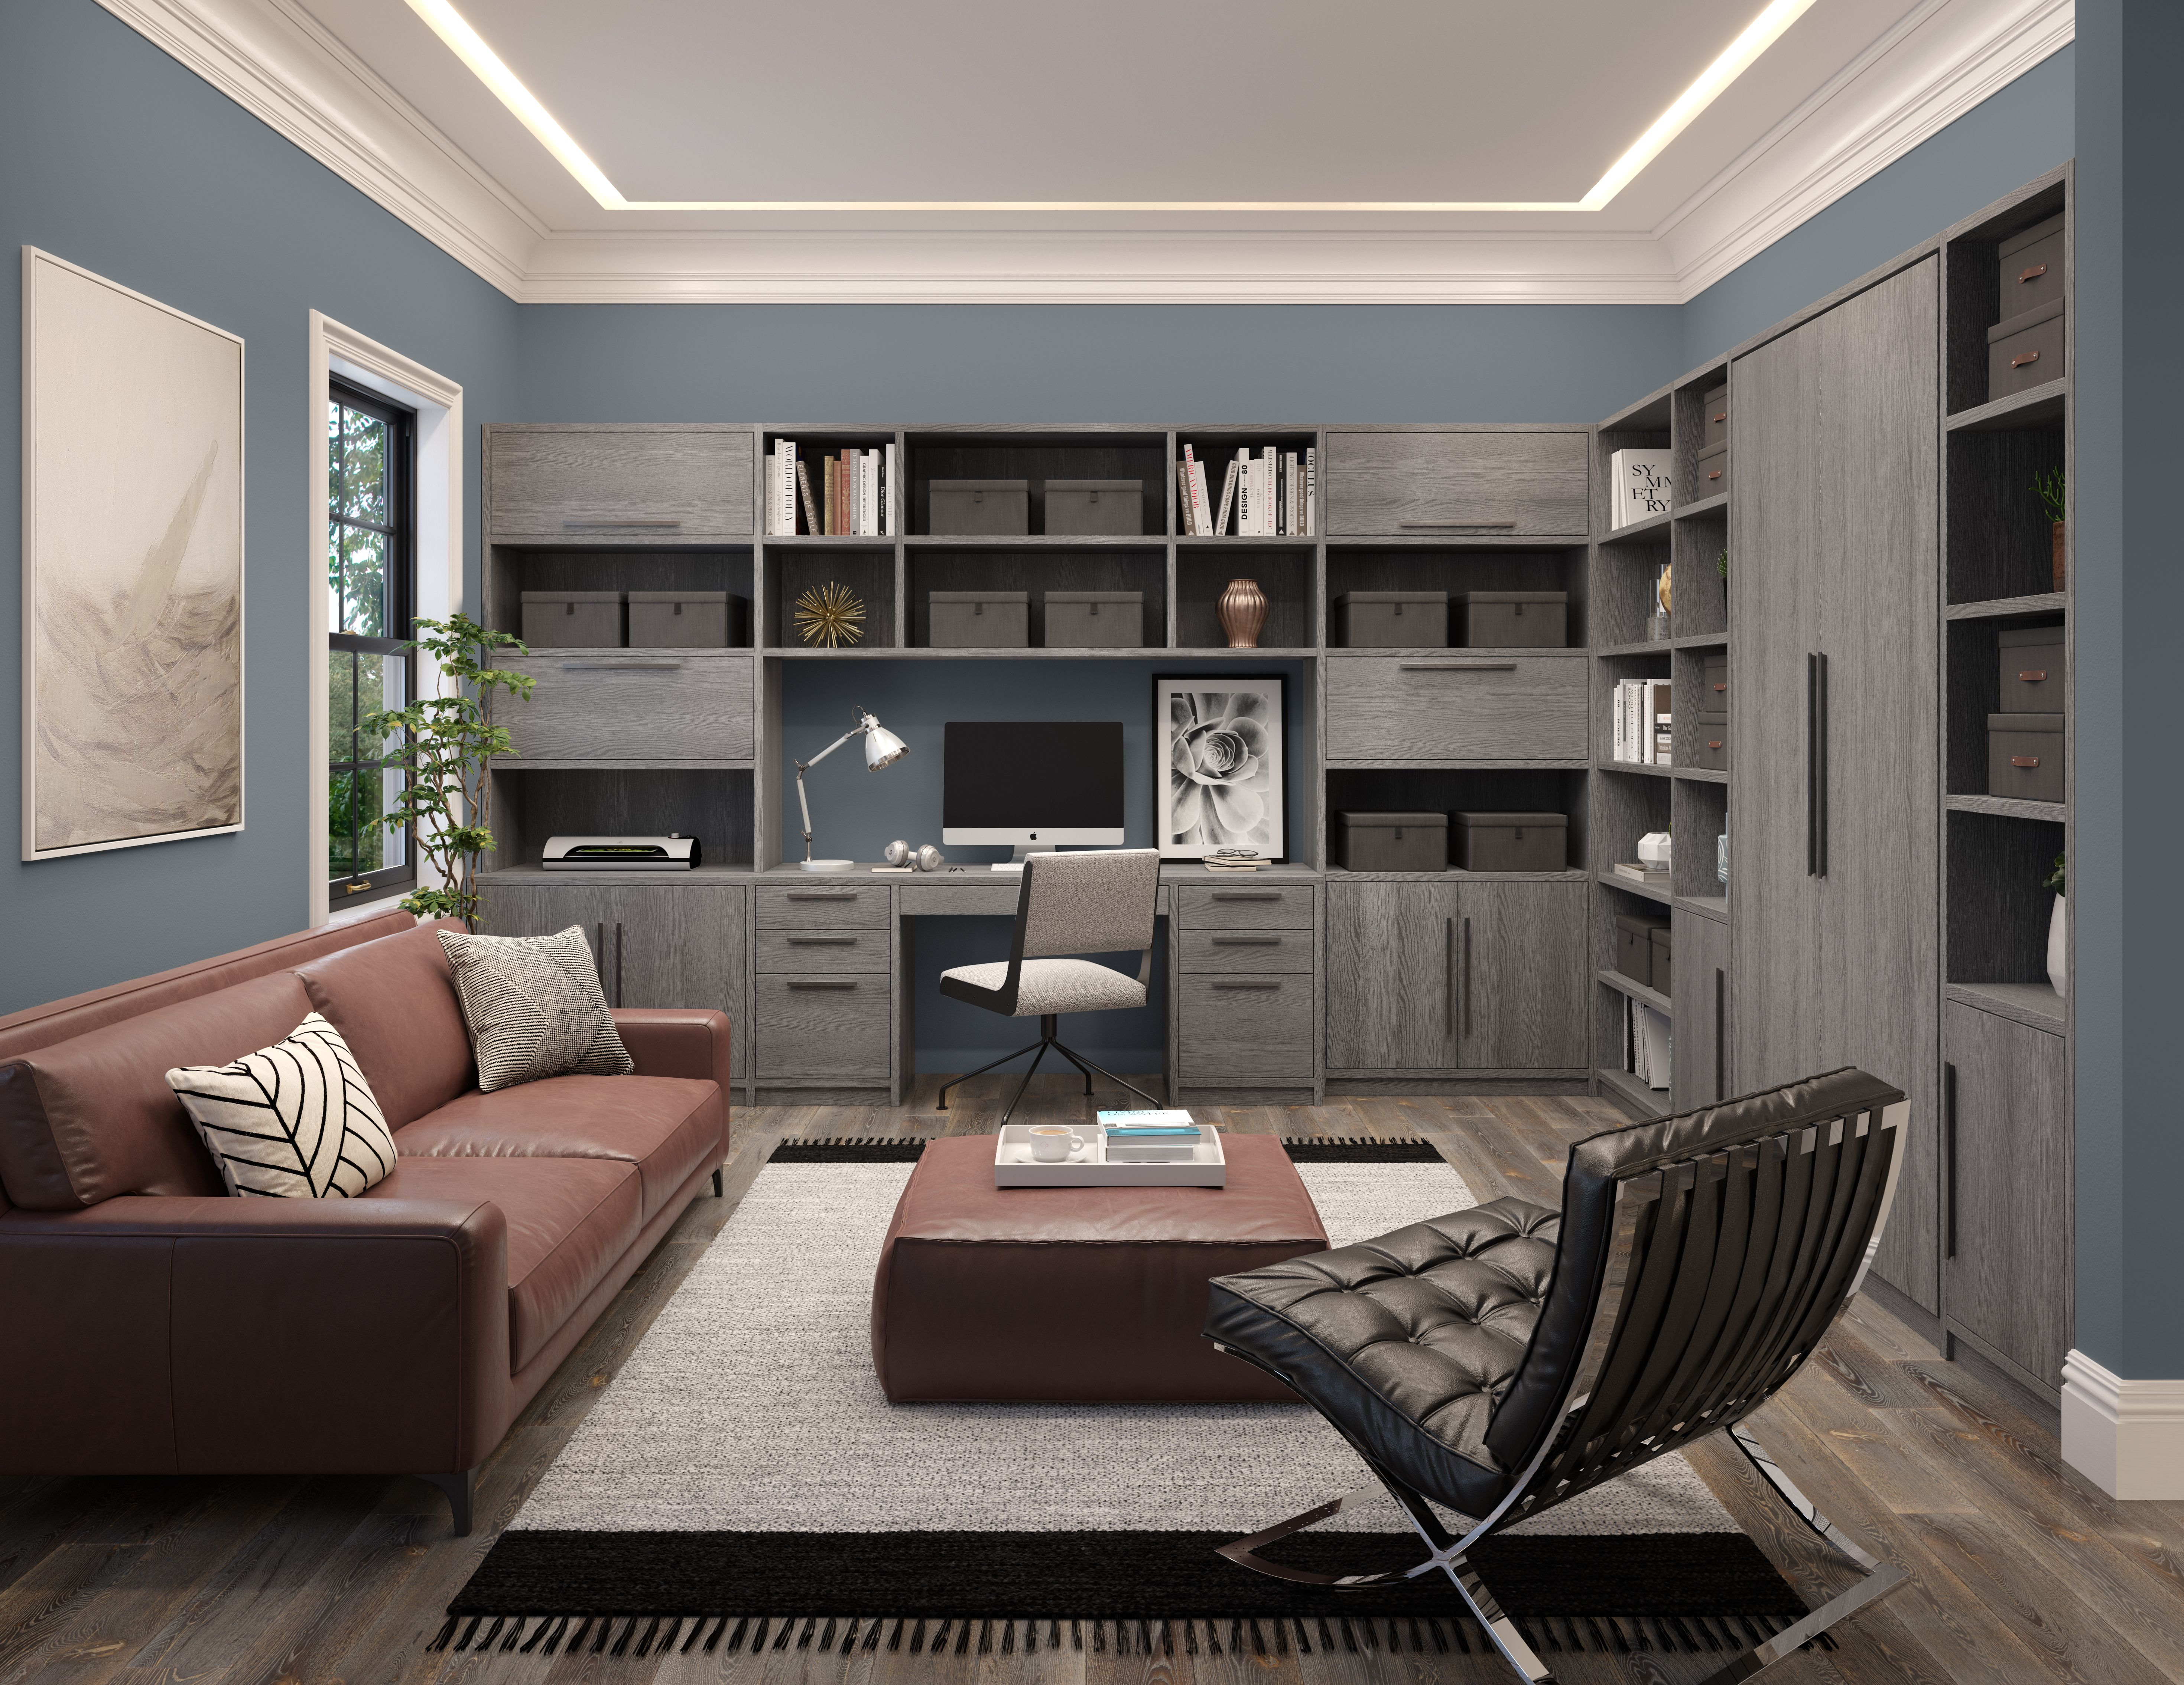 This custom home office space offers custom storage